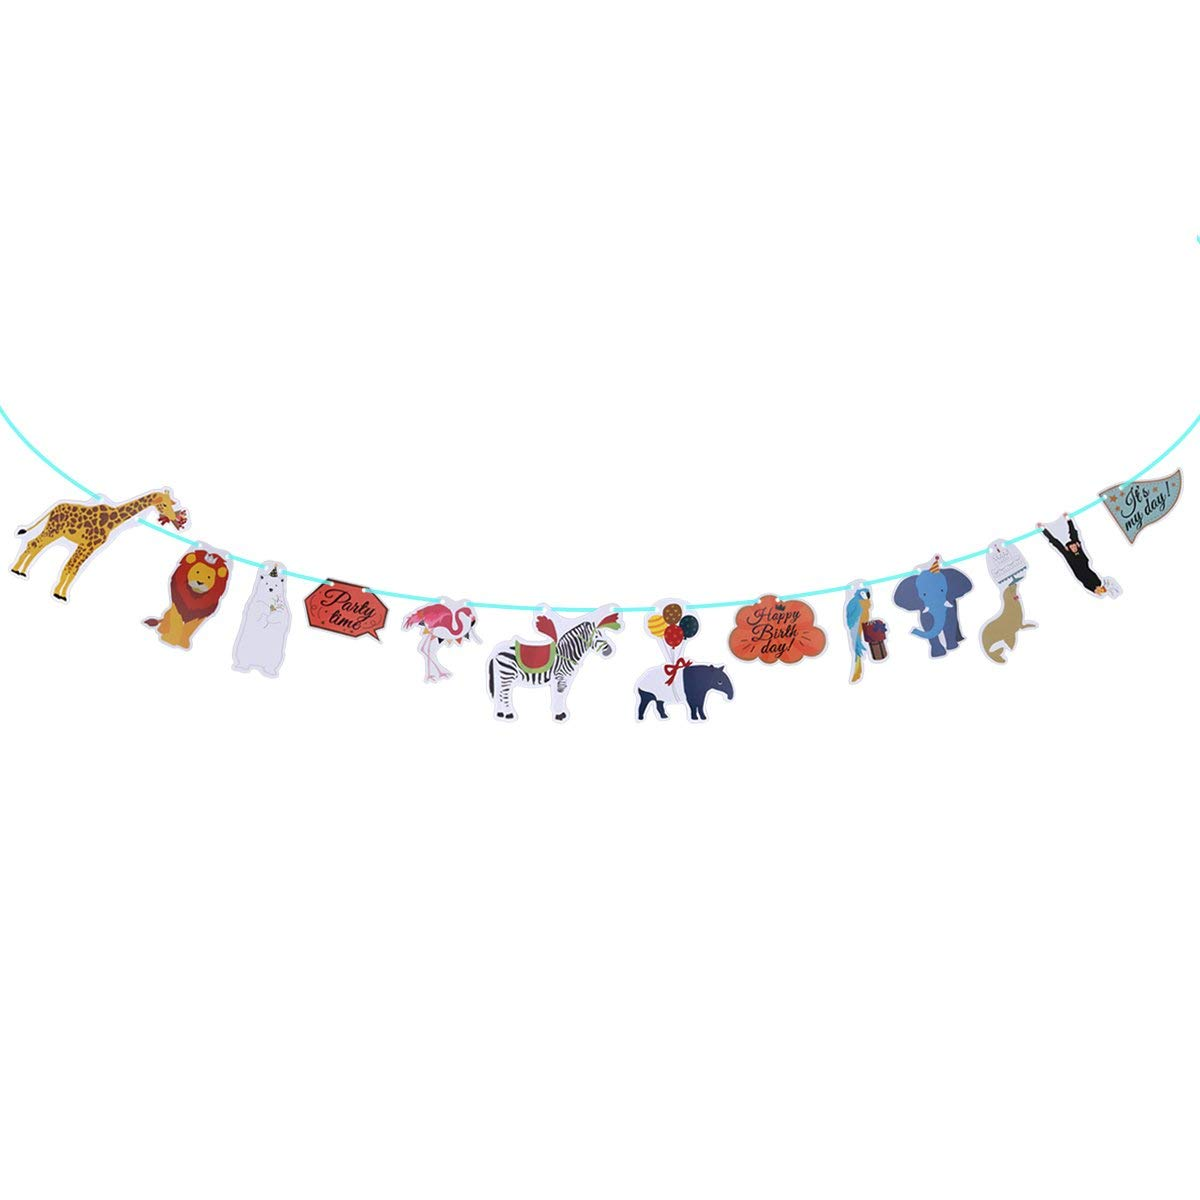 2.2 Meters Birthday Bunting Banners Jungle Animals Flamingo Zebra Monkey Bradypod Brown Bear Penguin Patterns Flags Hanging Garland Decoration For Birthday Festival Home Party Decor